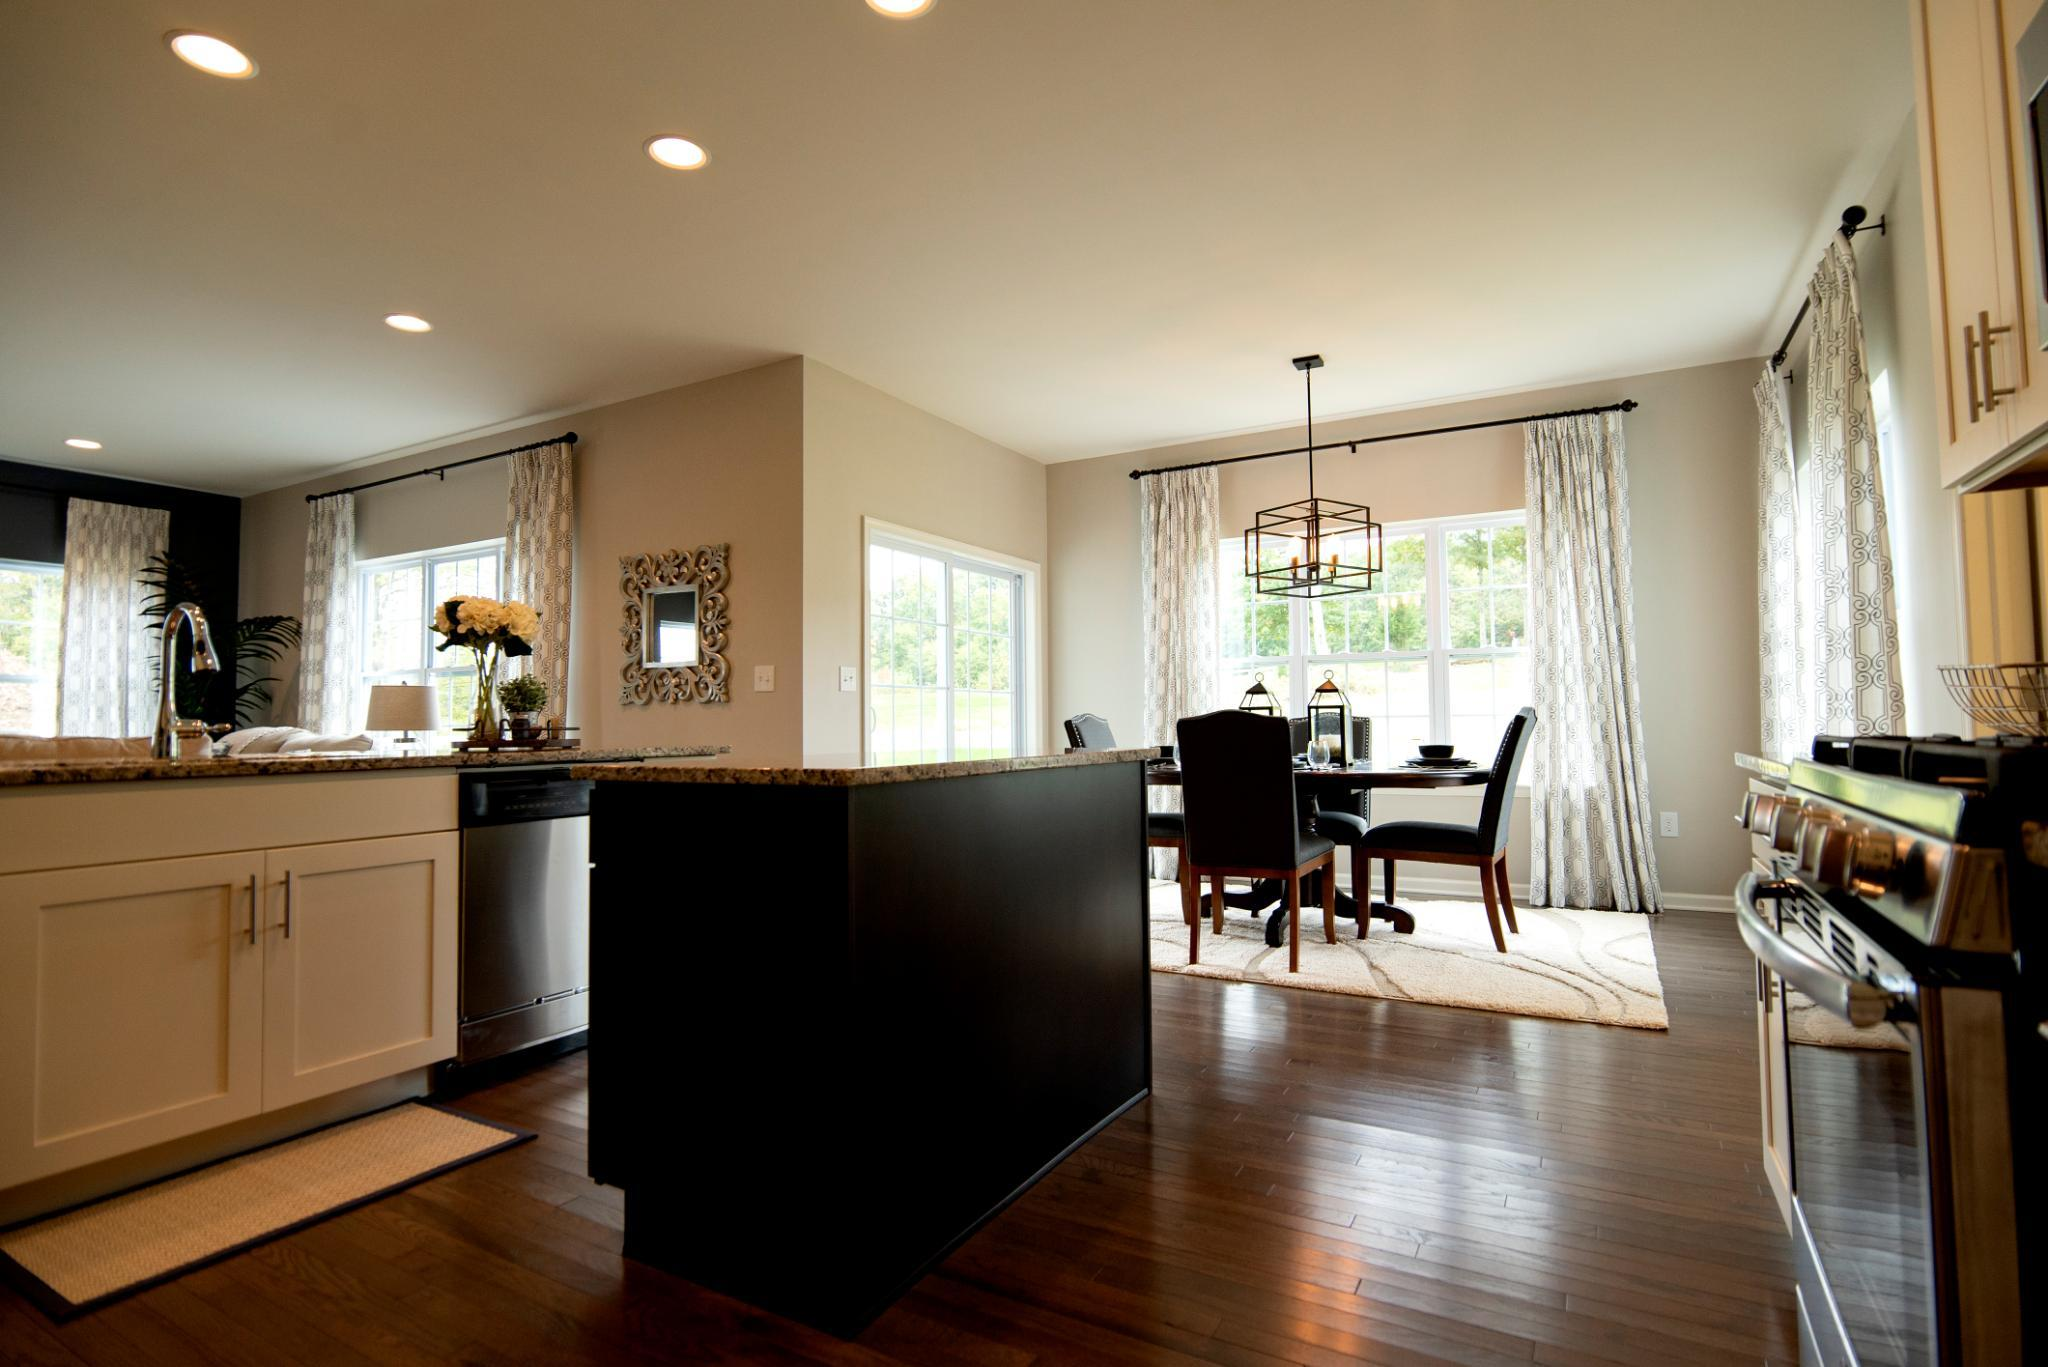 Kitchen featured in the Kingston Traditional By Tuskes Homes in Allentown-Bethlehem, PA